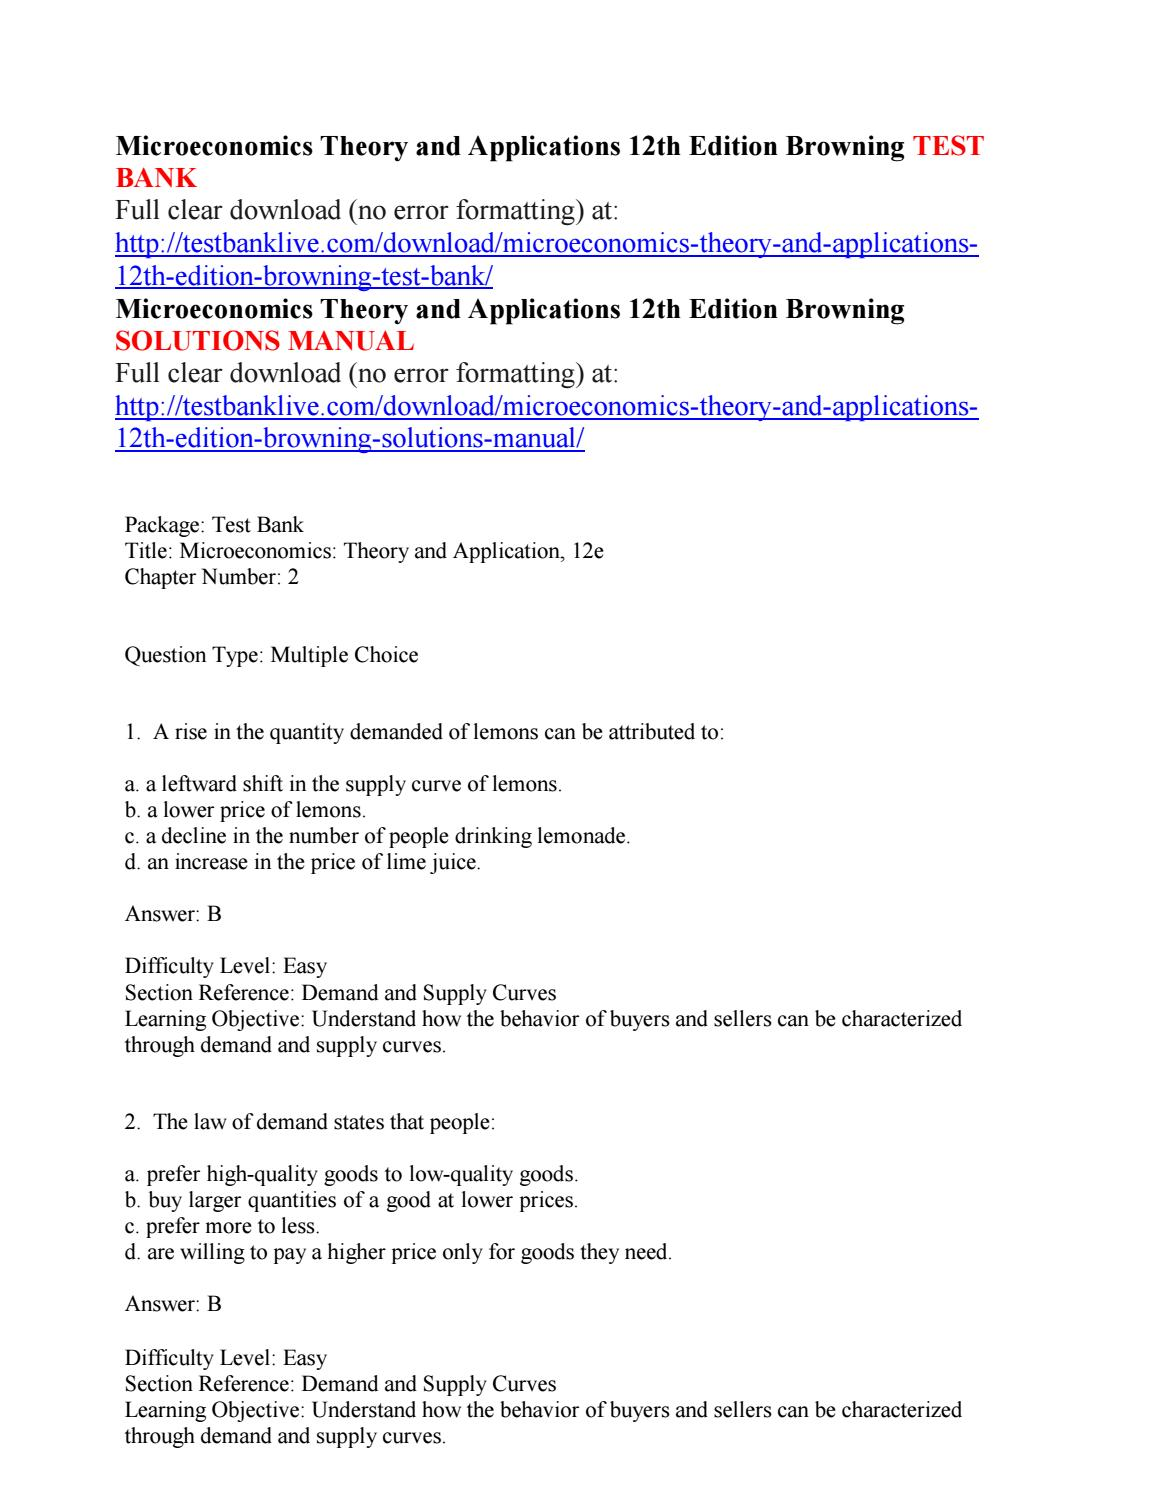 Microeconomics theory and applications 12th edition browning test bank by  haui111 - issuu